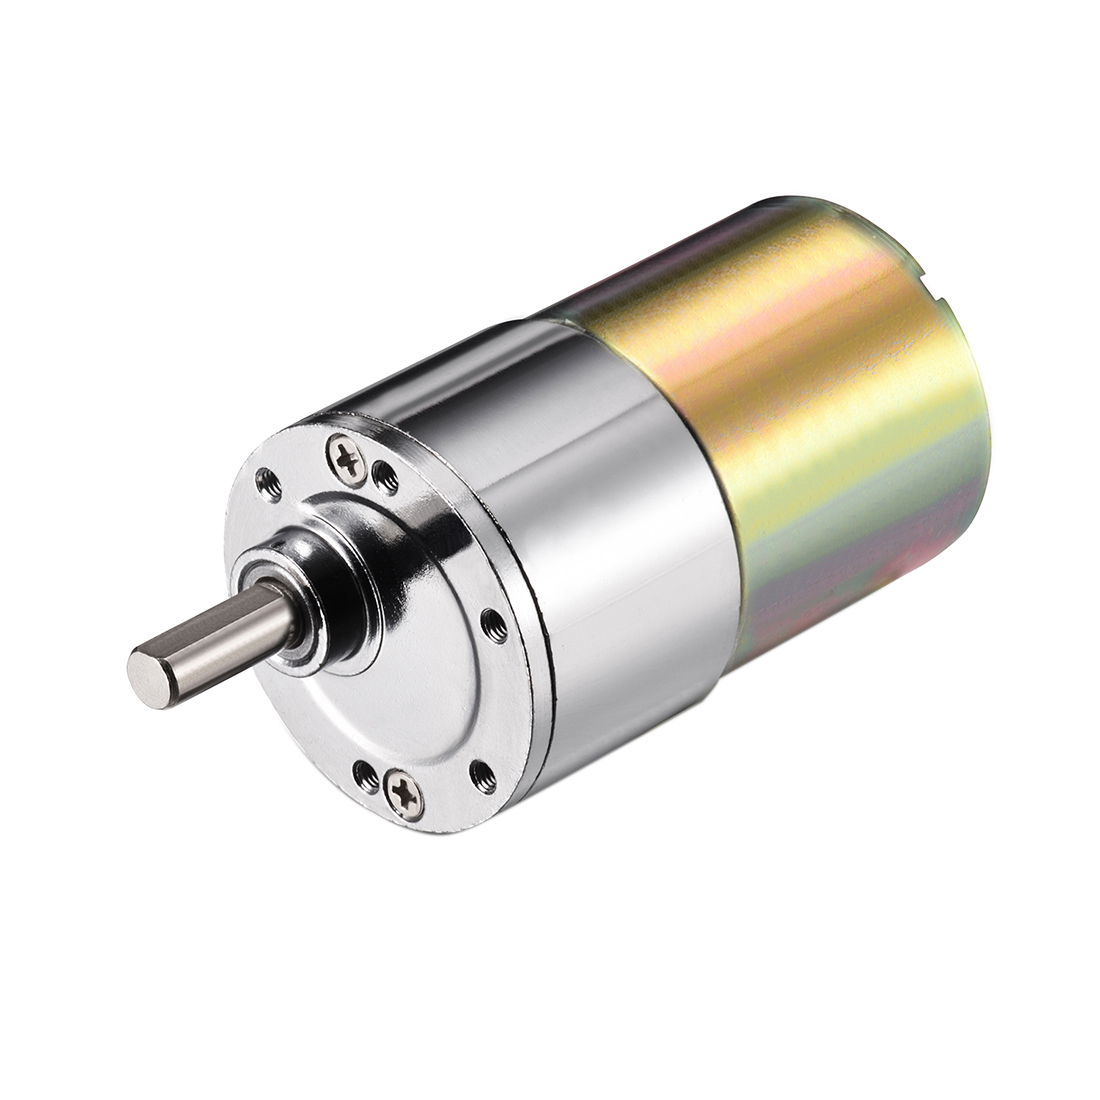 DC 12V 15RPM Micro Gear Box Motor Speed Reduction Gearbox Eccentric Output Shaft